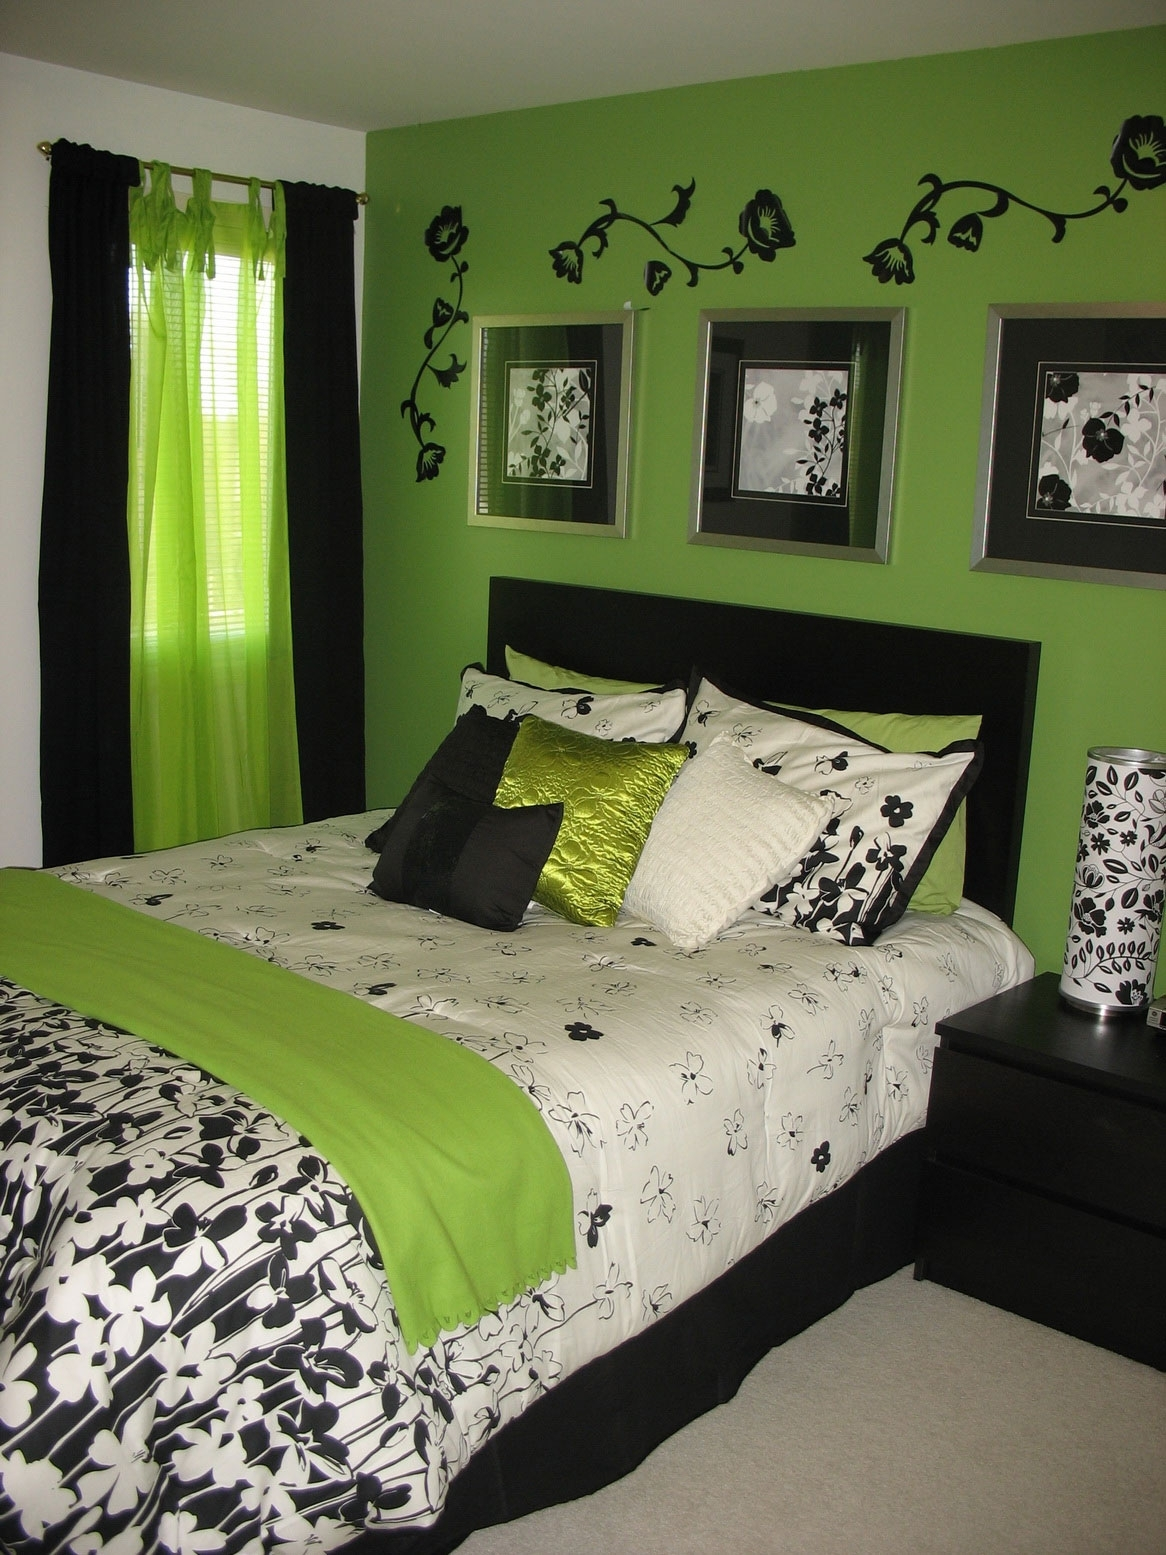 Bedroom : Beauteous Small Green Bedroom Wall Decor Ideas With Regarding Most Recent Green Room Wall Accents (View 3 of 15)